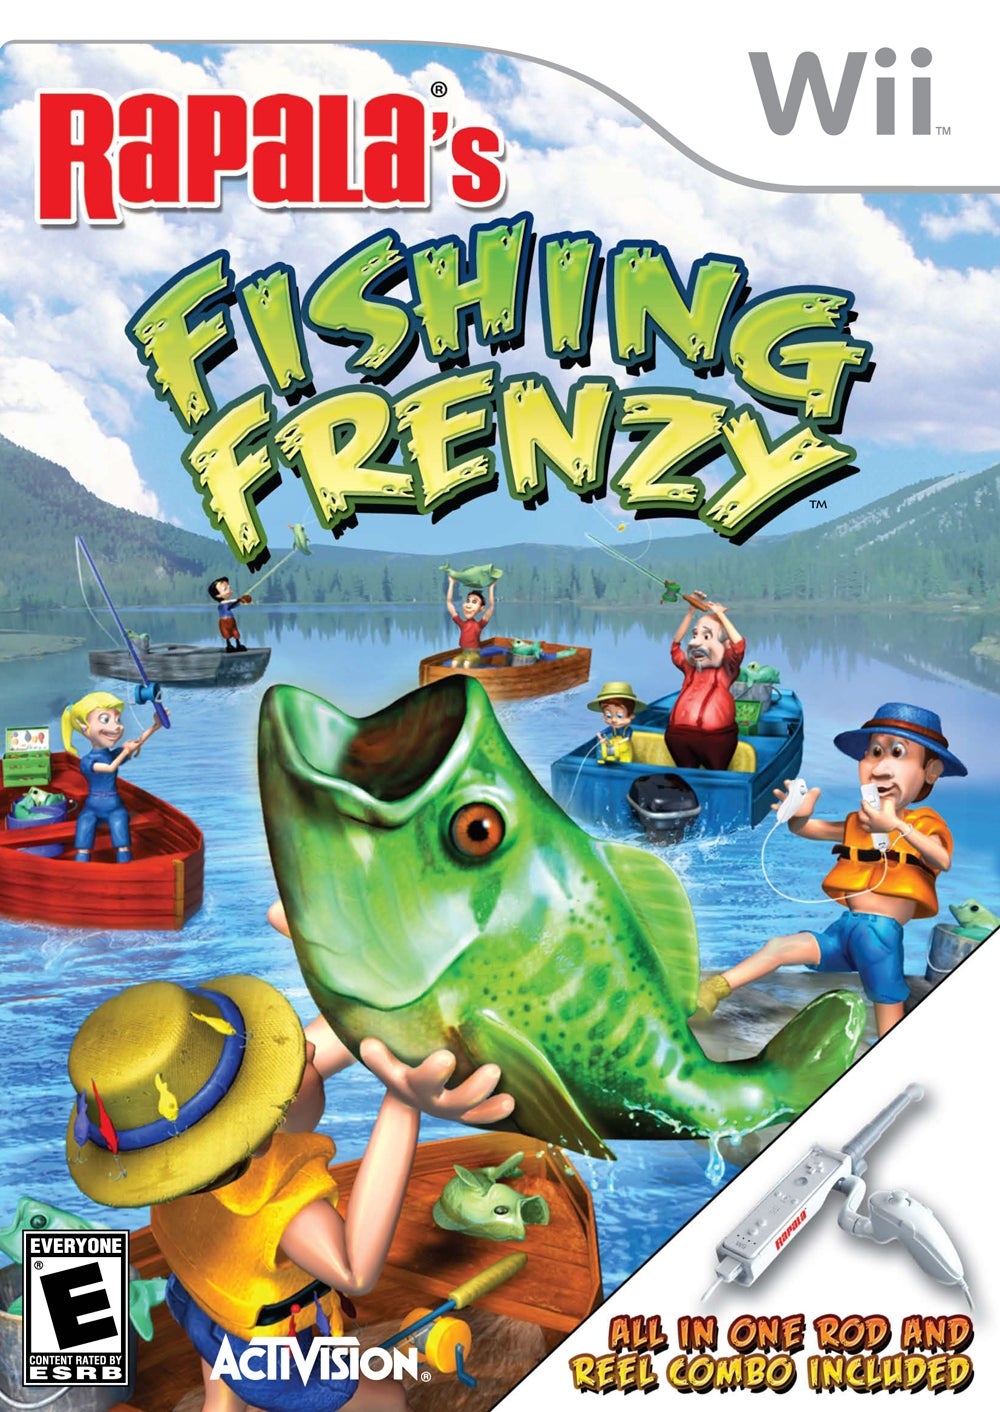 Rapala Fishing Frenzy Review IGN